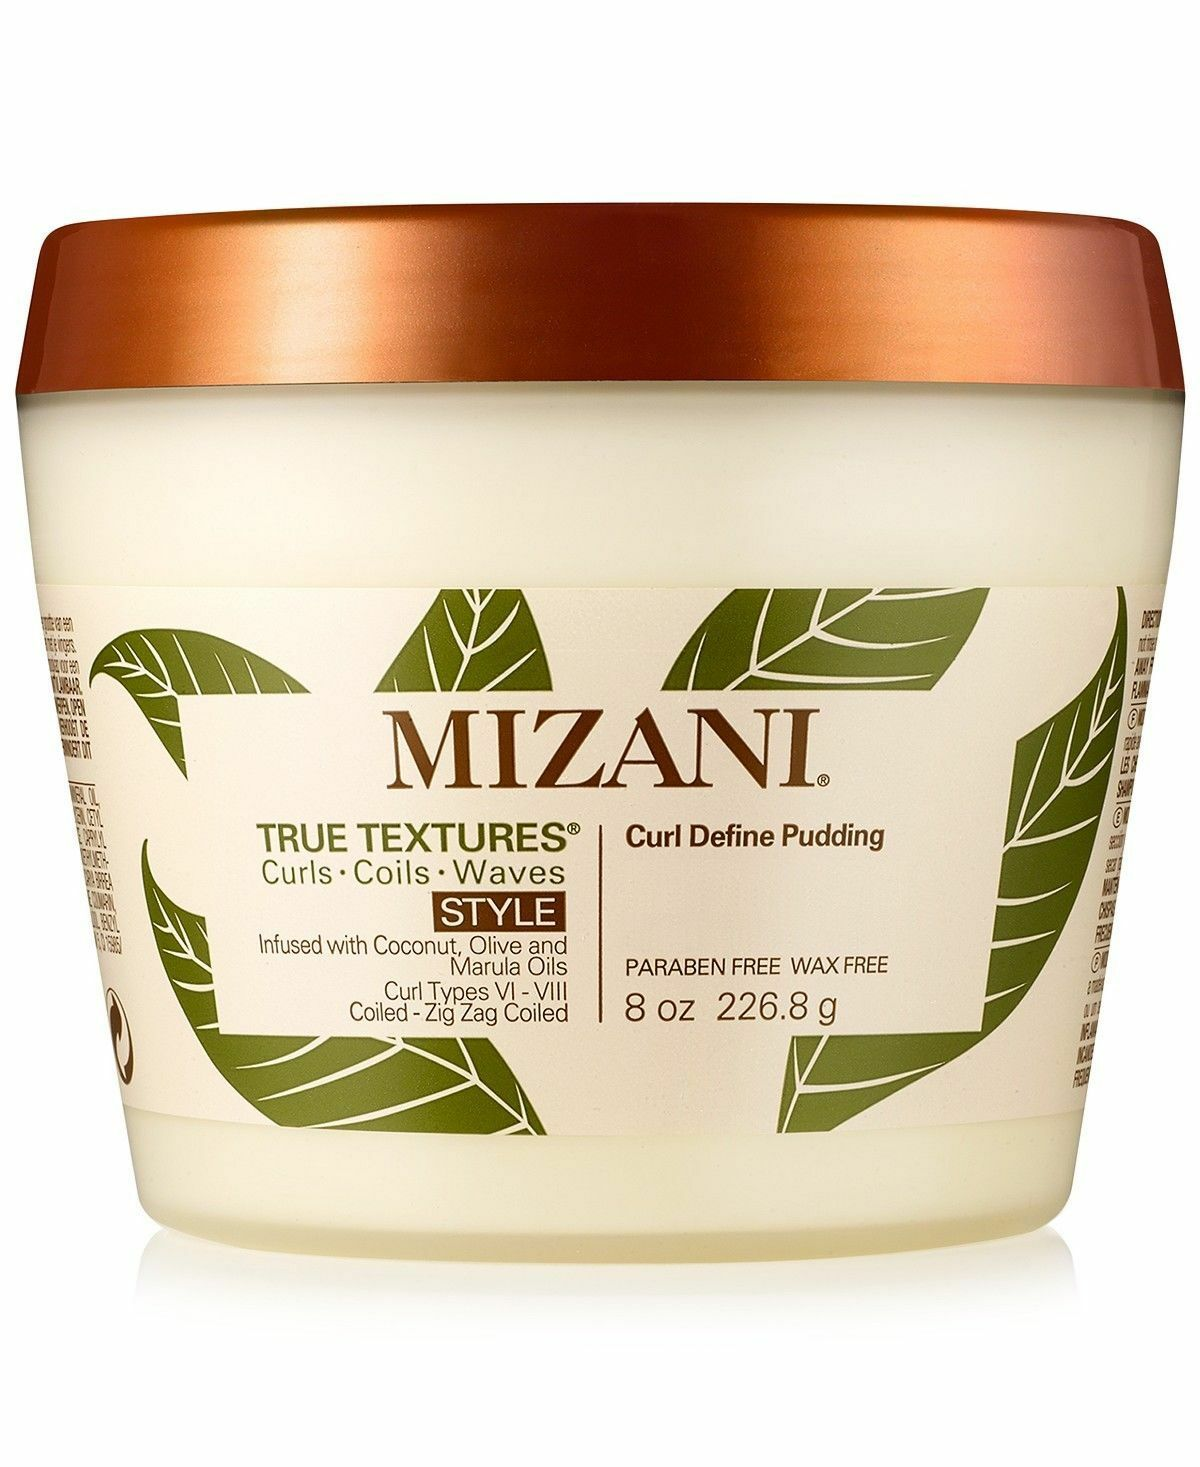 Mizani True Textures Curl Define Pudding 8oz Hair Care & Styling